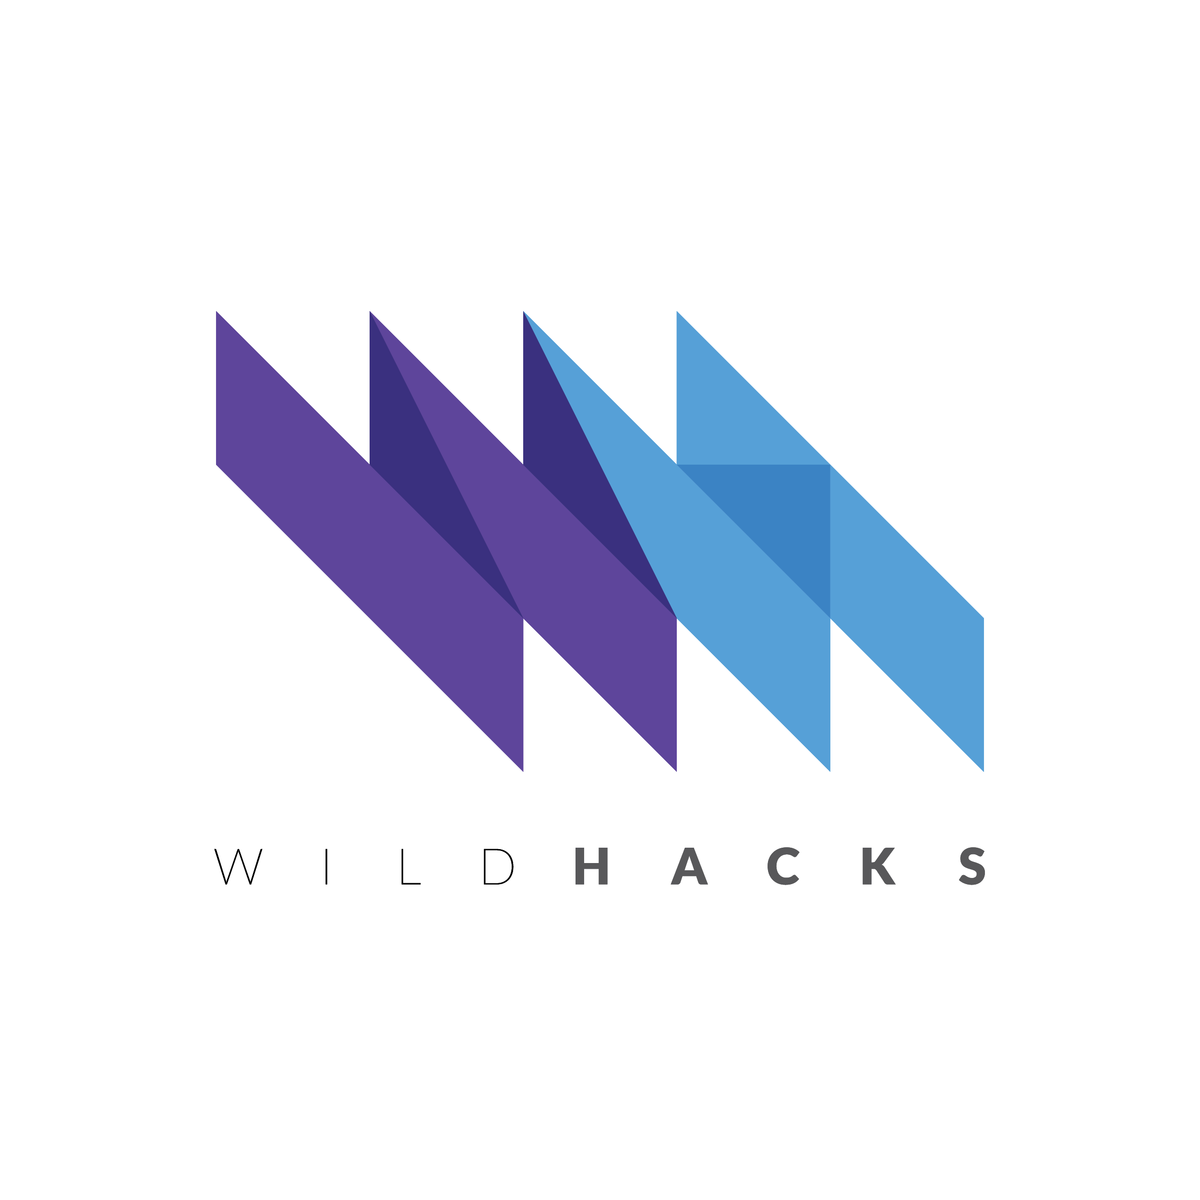 WildHacks 2016